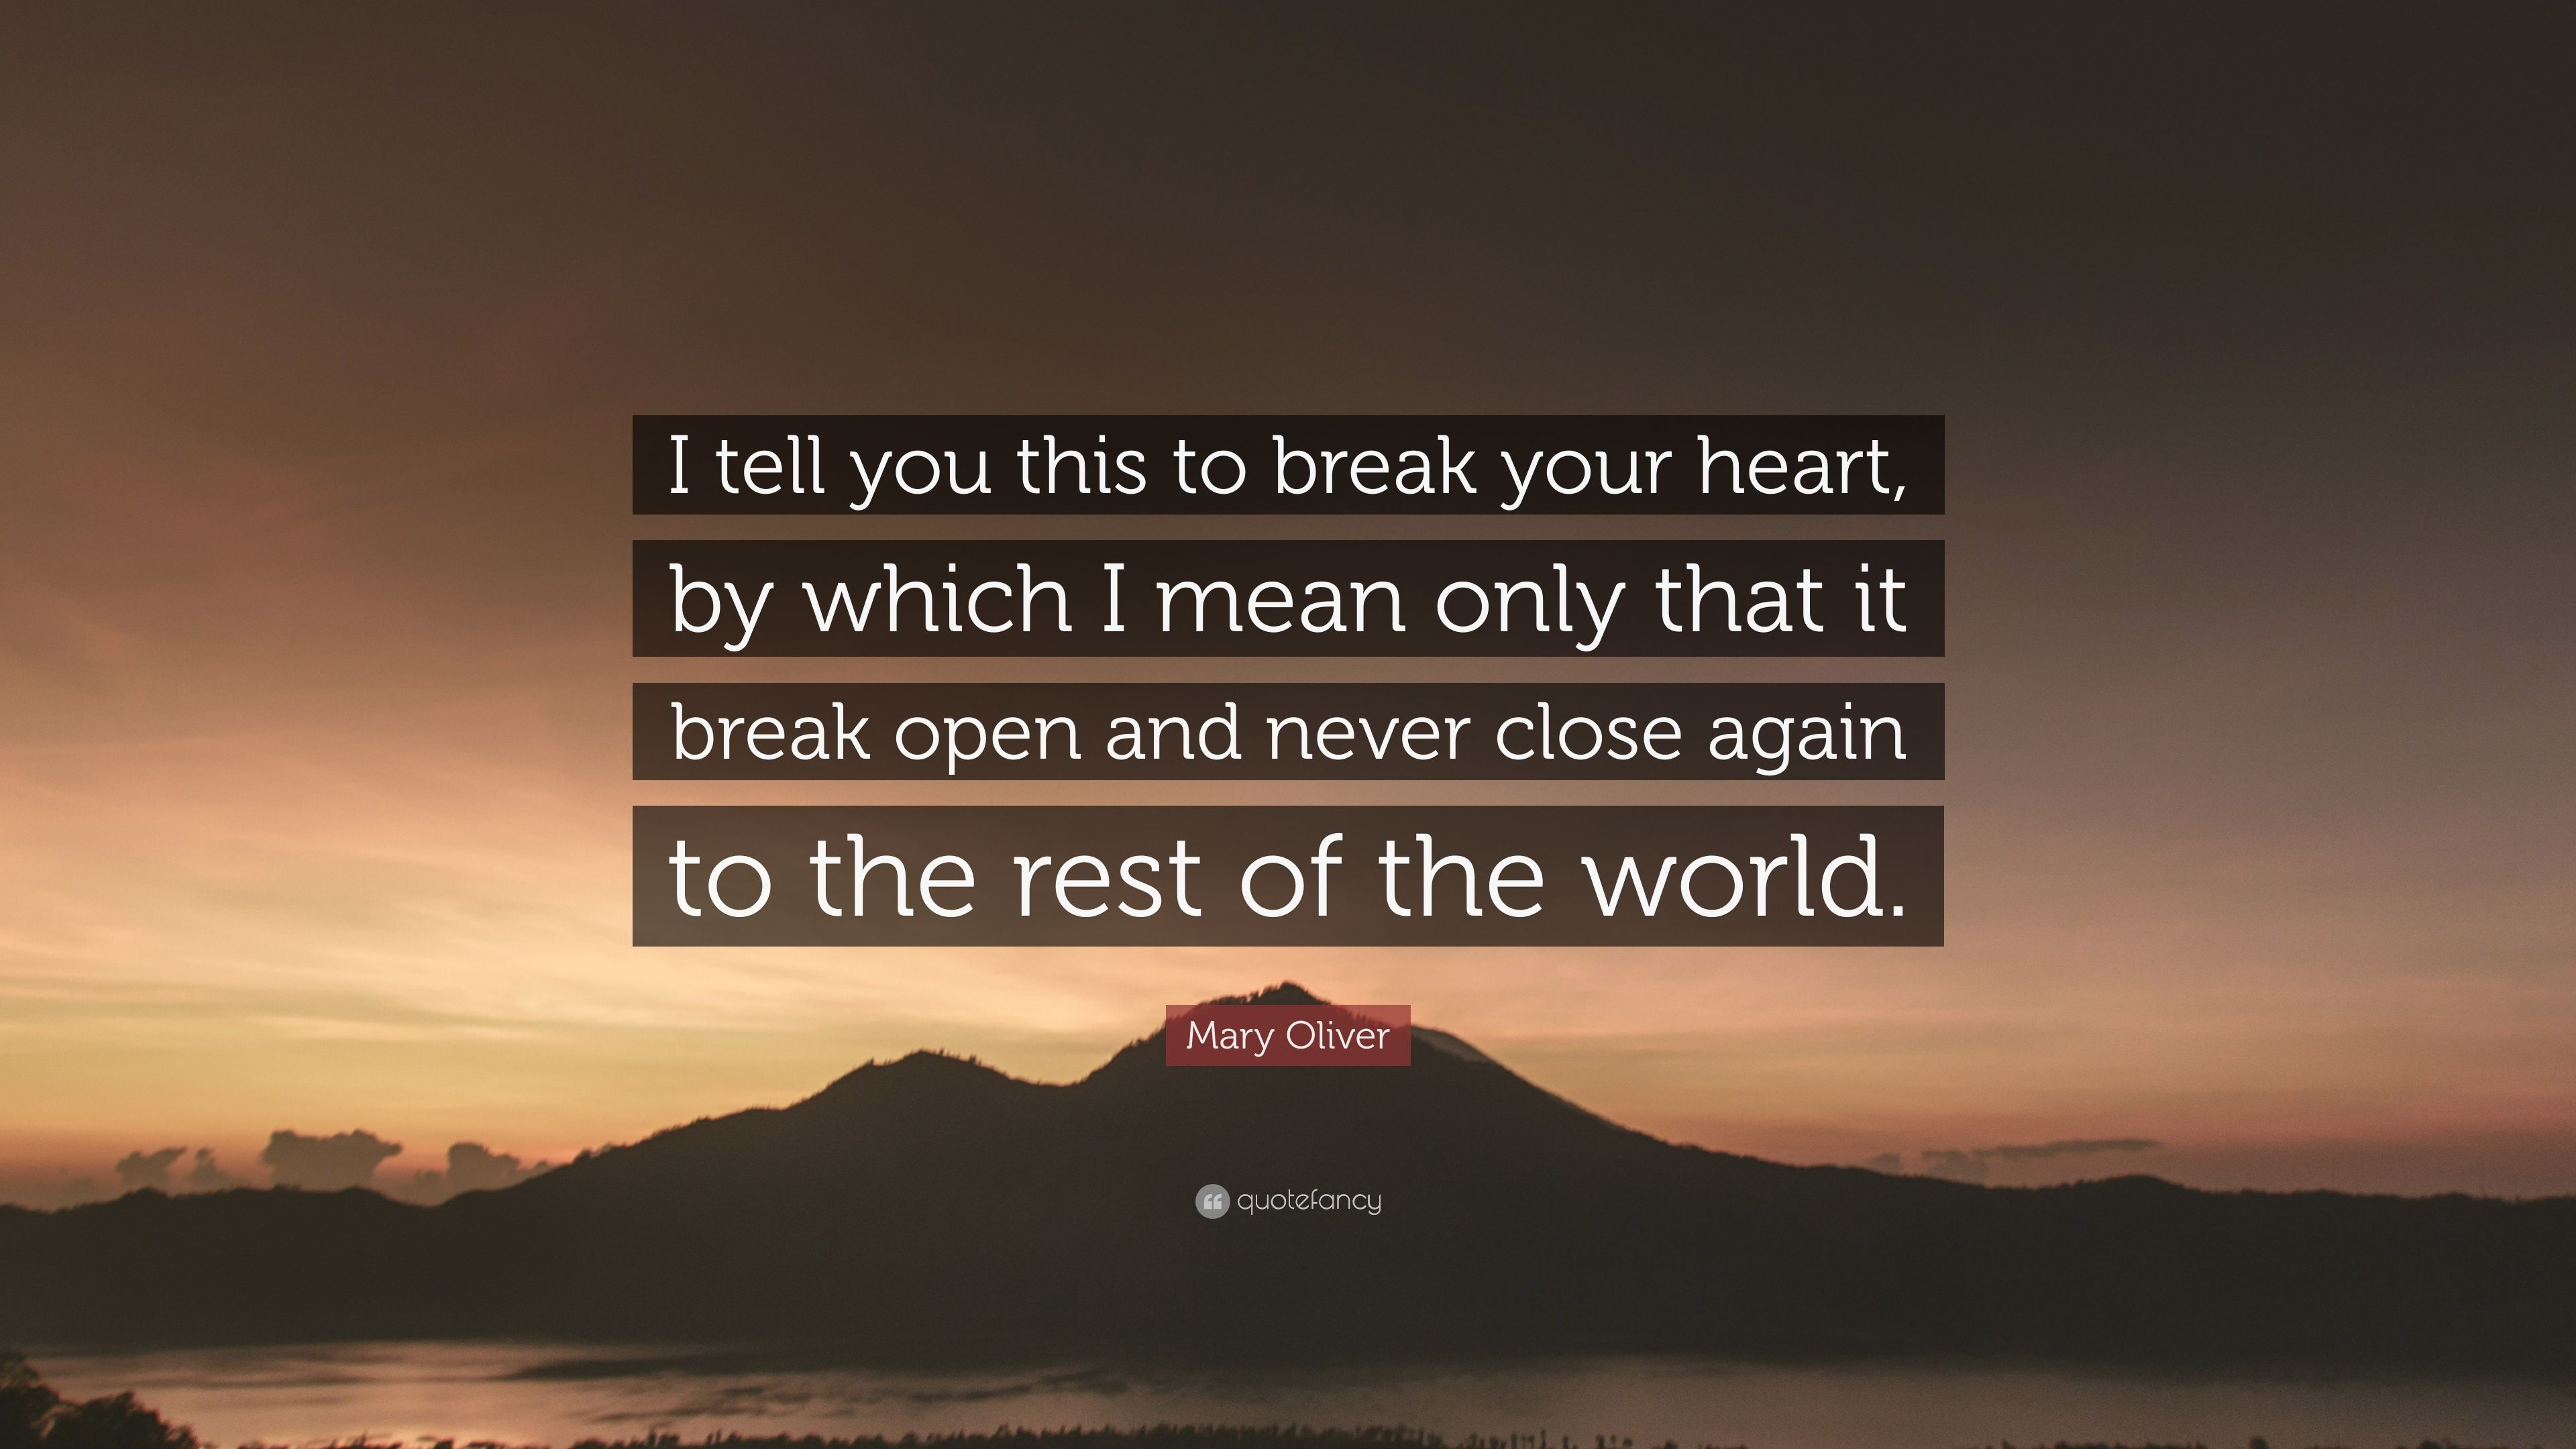 Mary Oliver Quote: I tell you this to break your heart